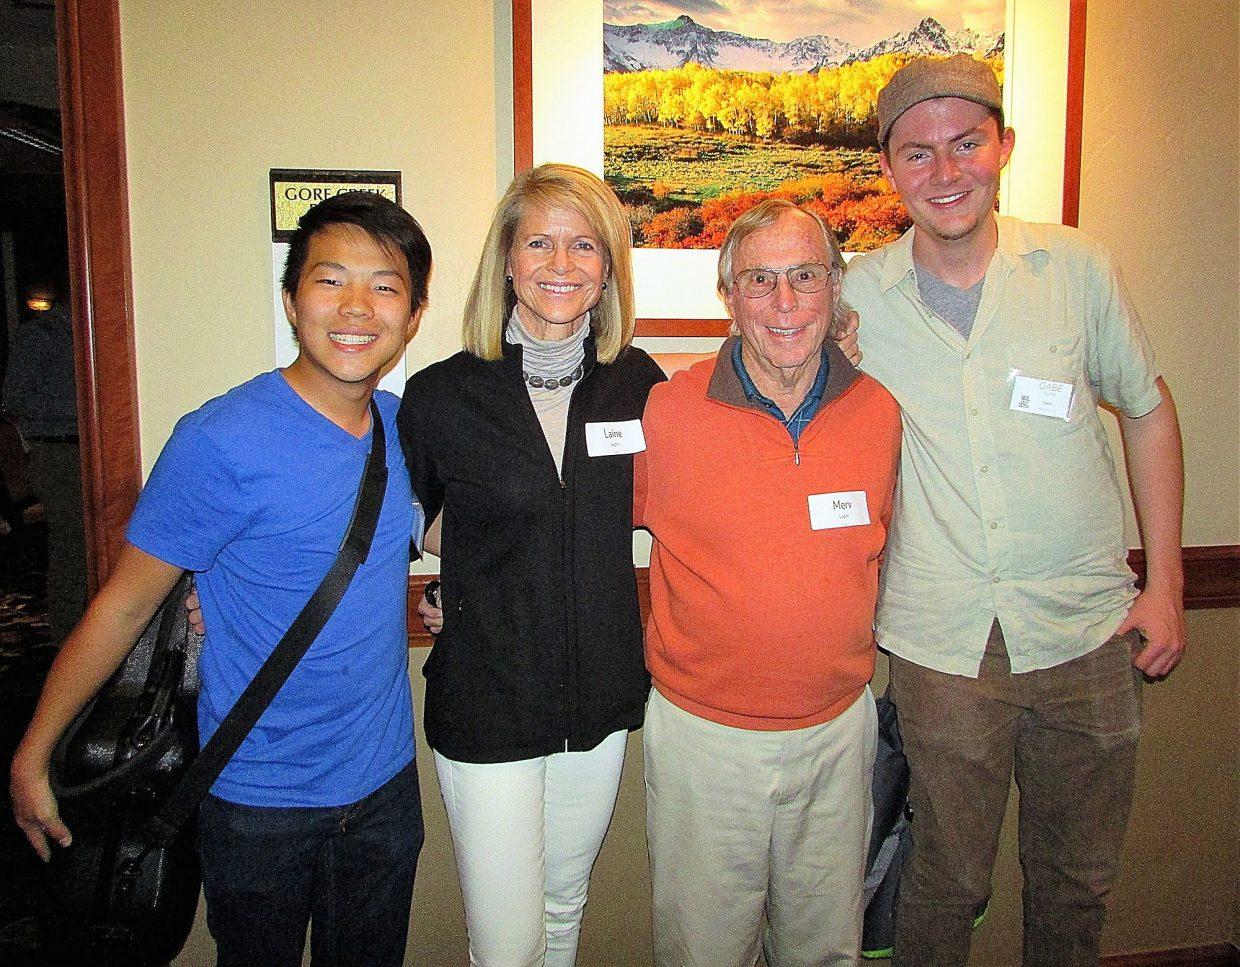 Austin Zhang and Gabe Rupe with their host family, Merv and Laine Lapin.